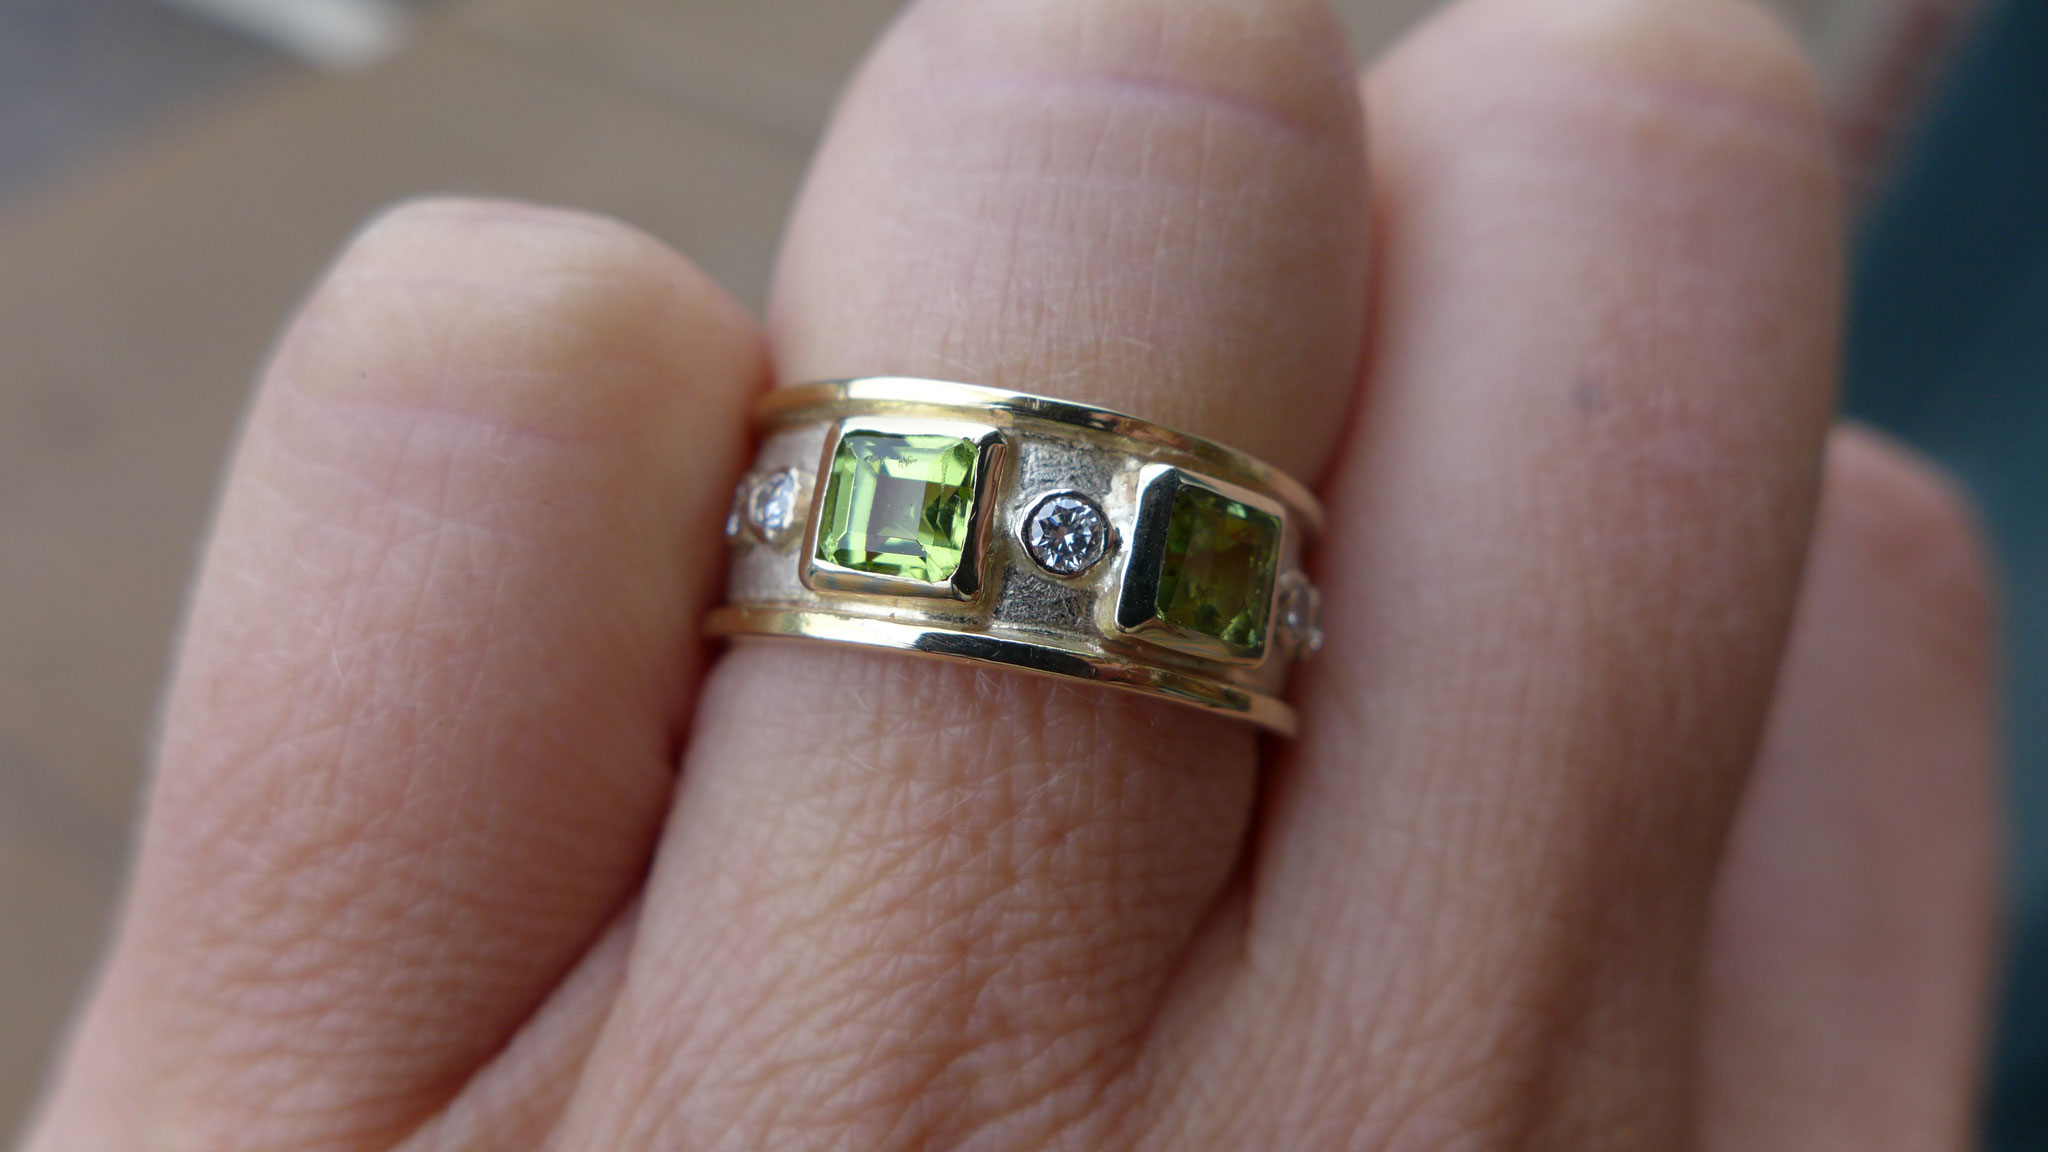 14k white and yellow gold, diamonds, peridots